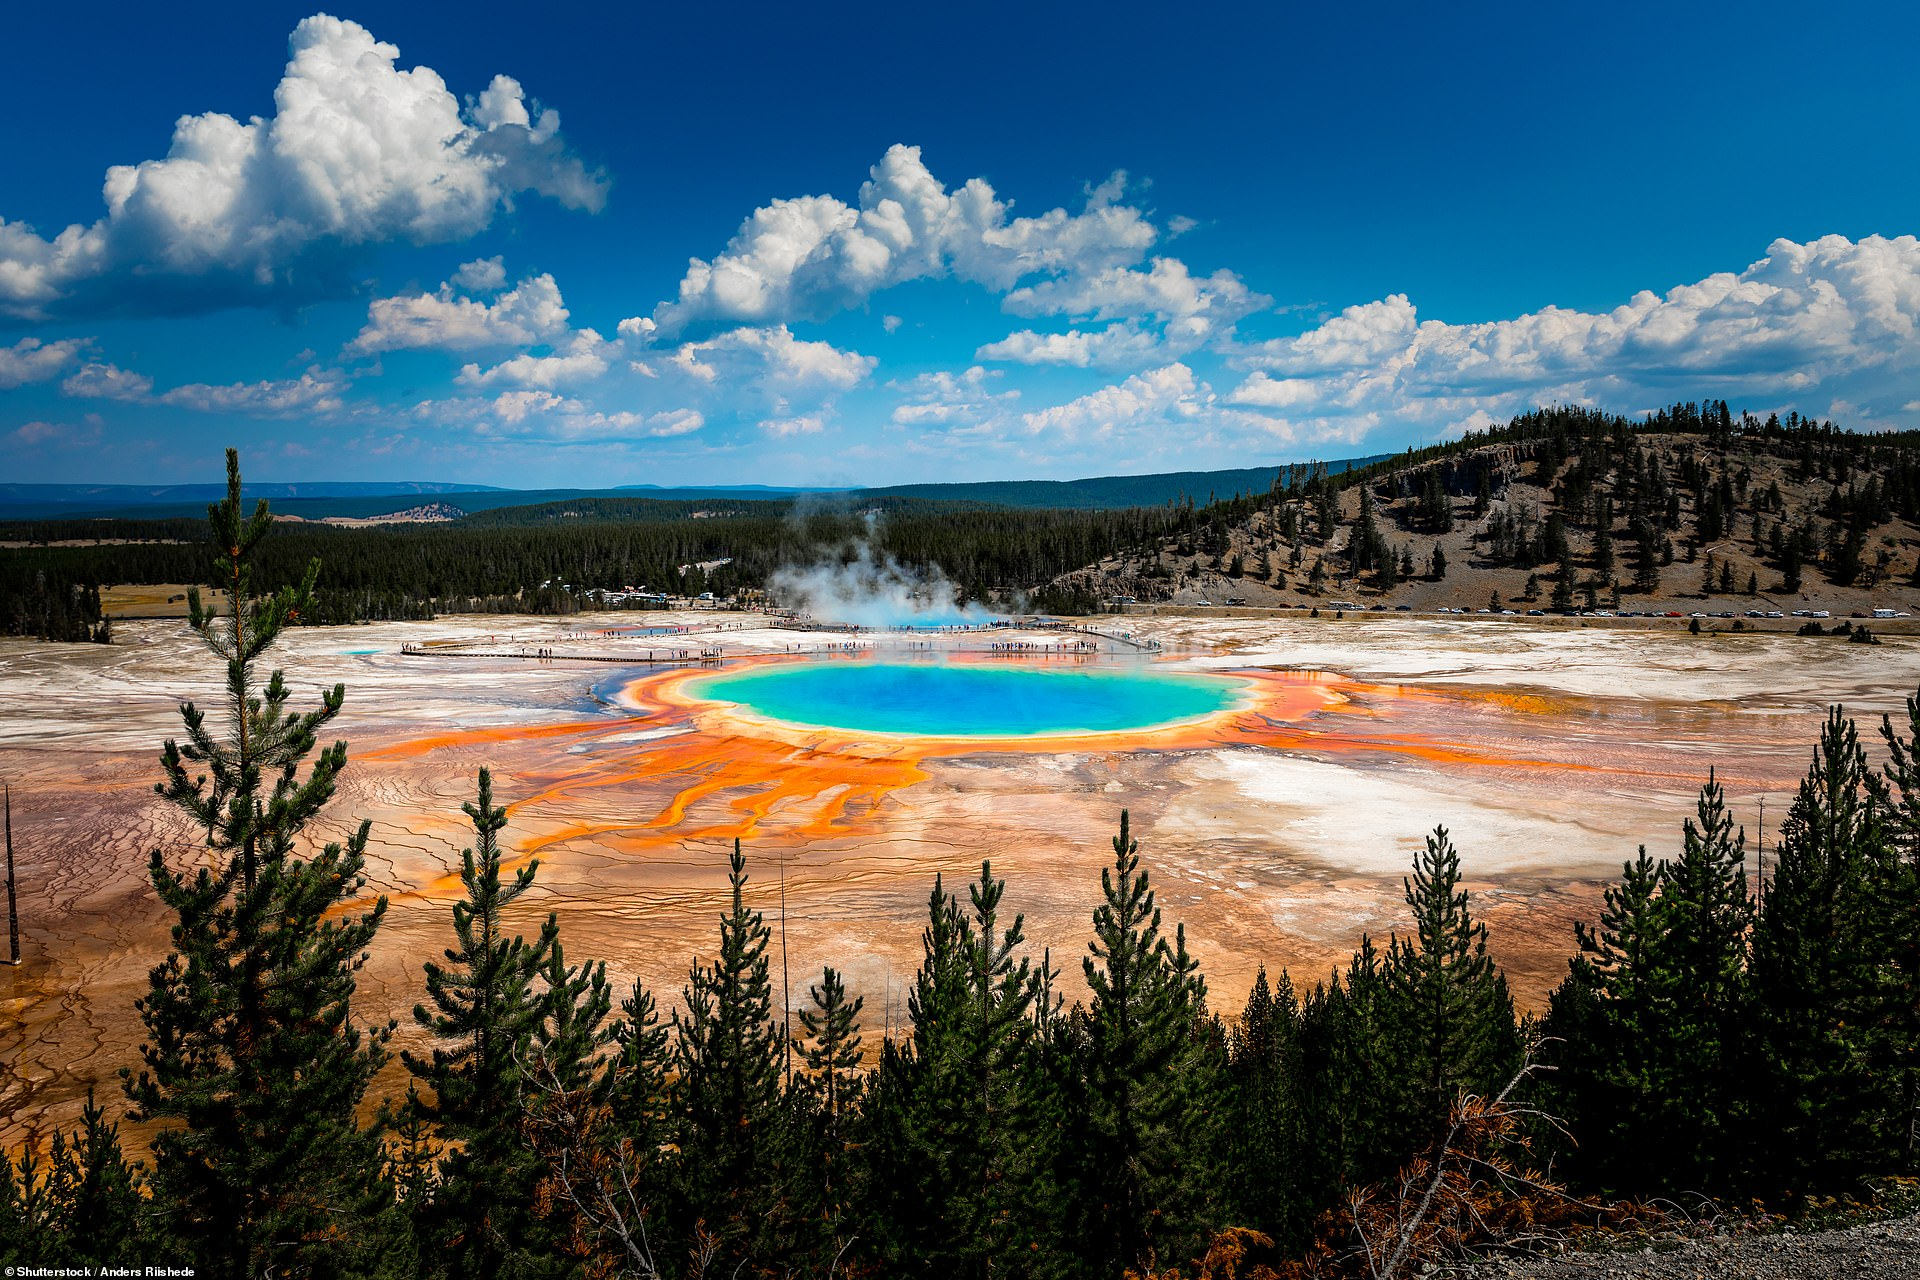 yellowstone_national_park_in_wyoming.jpg